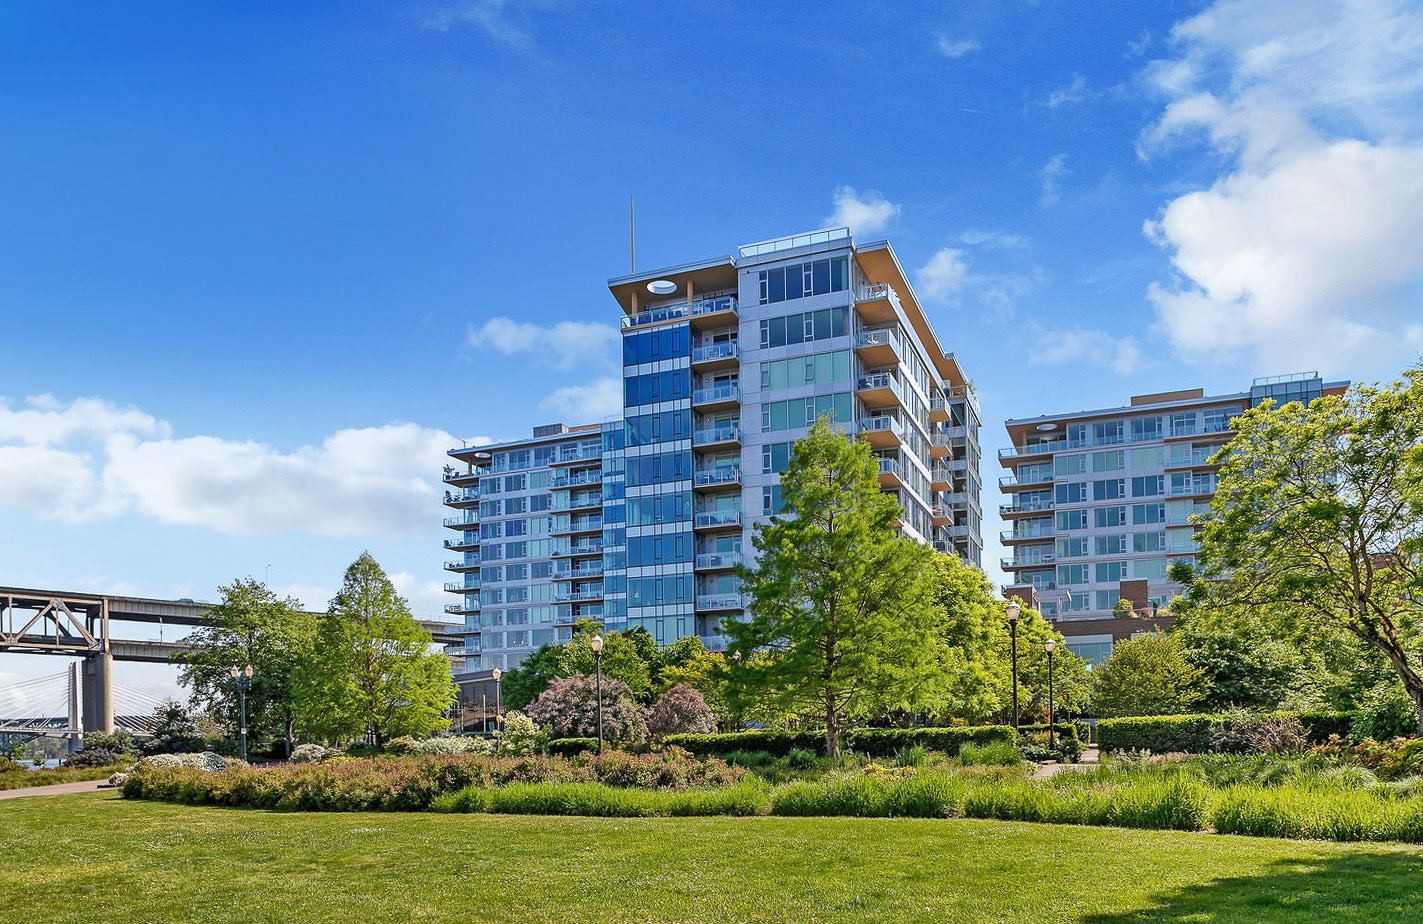 The Strand Condominiums: a trio of elegant glass towers along Portland's waterfront.